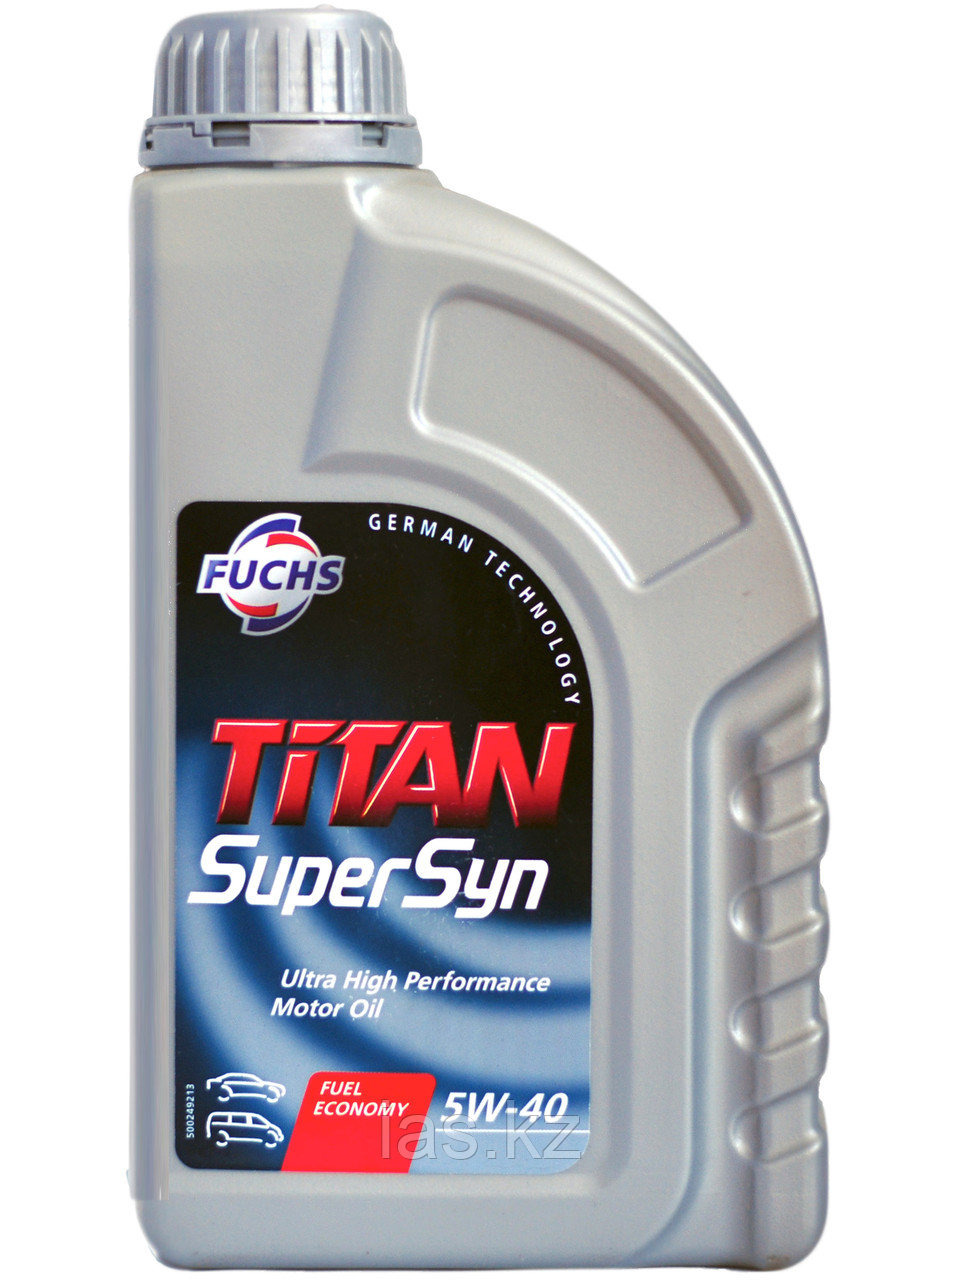 Моторное масло TITAN SUPERSYN 5w40 1 литр